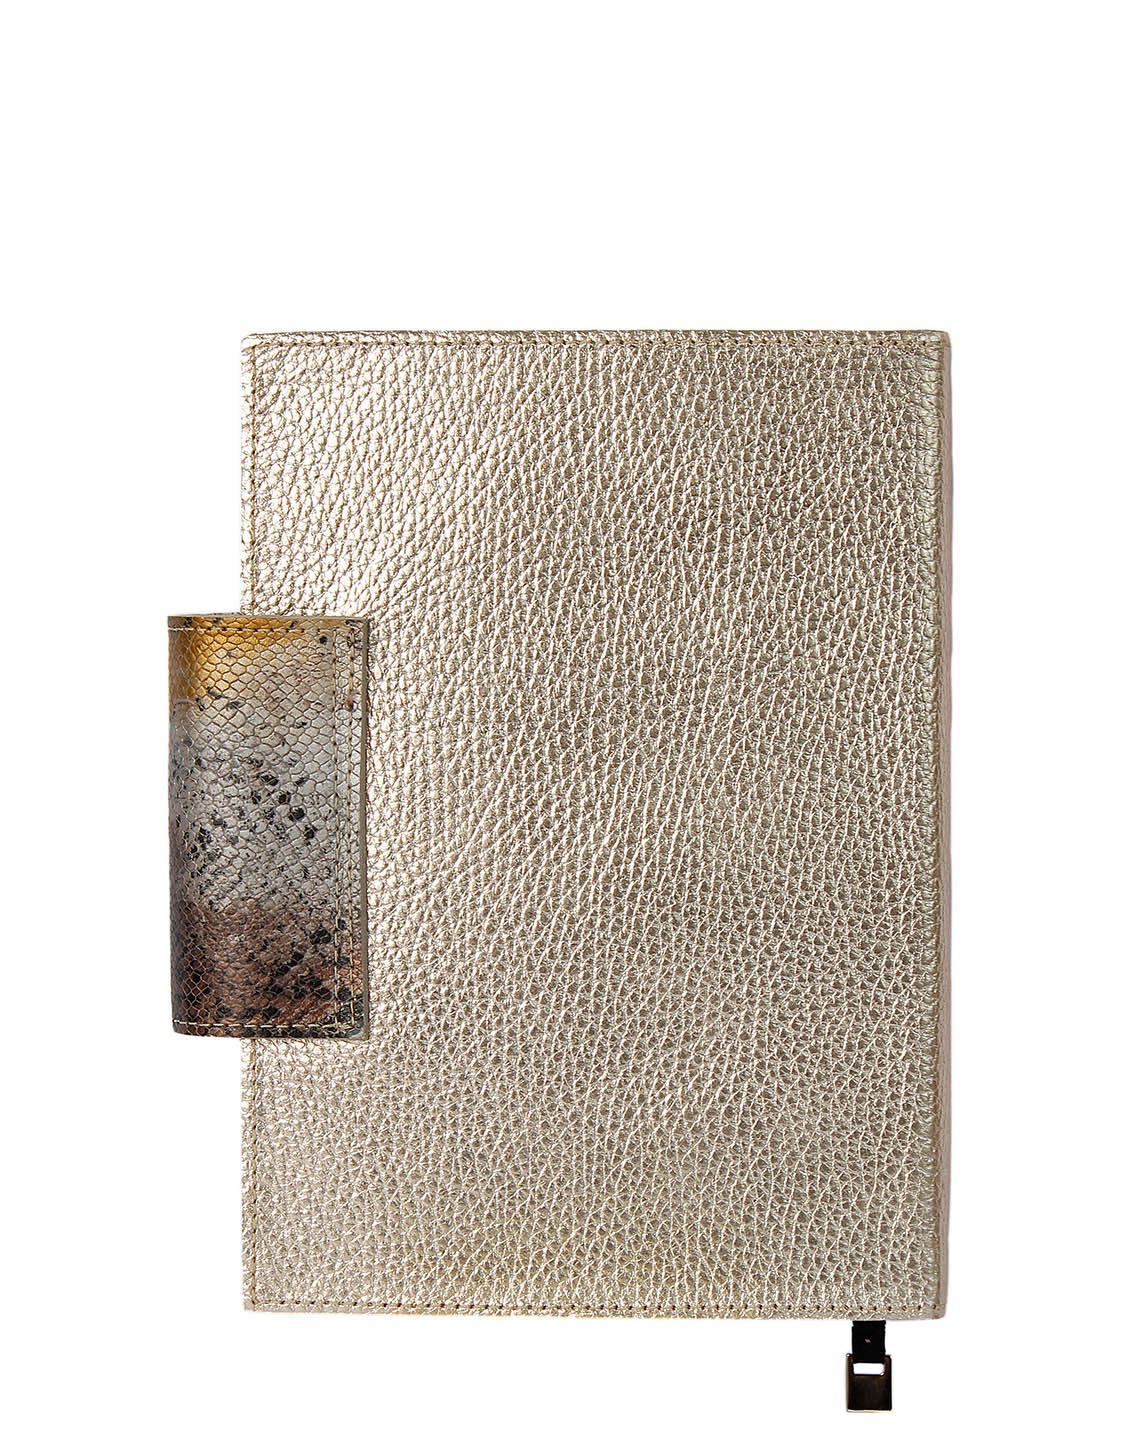 Agenda AG-0125 Color Oro